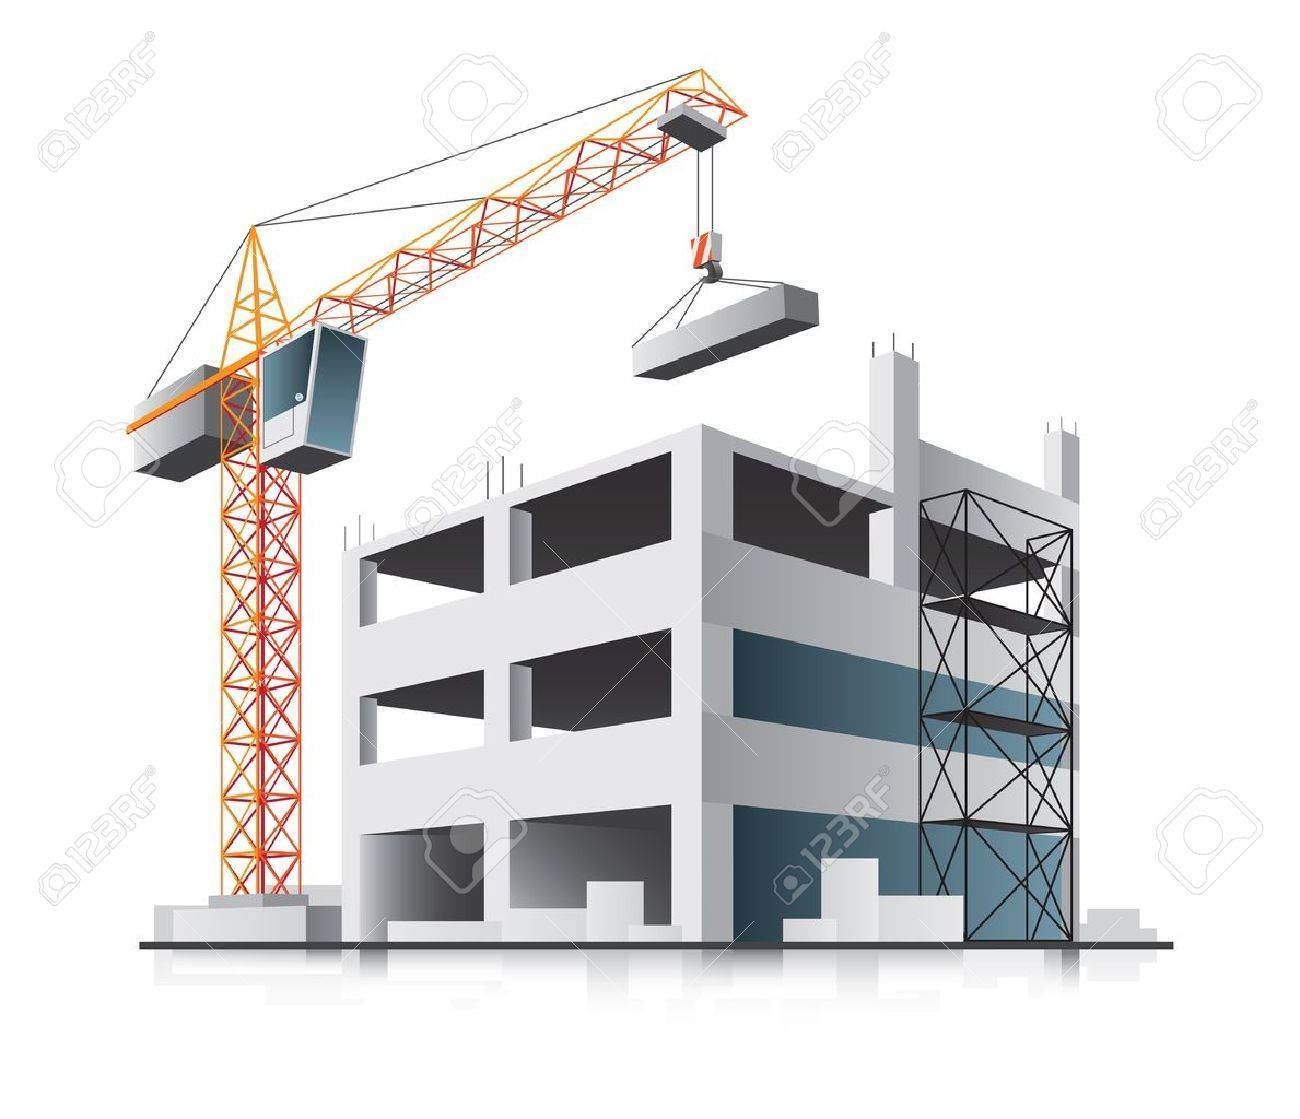 Building construction cliparts png free library Building construction site clipart 7 » Clipart Portal png free library